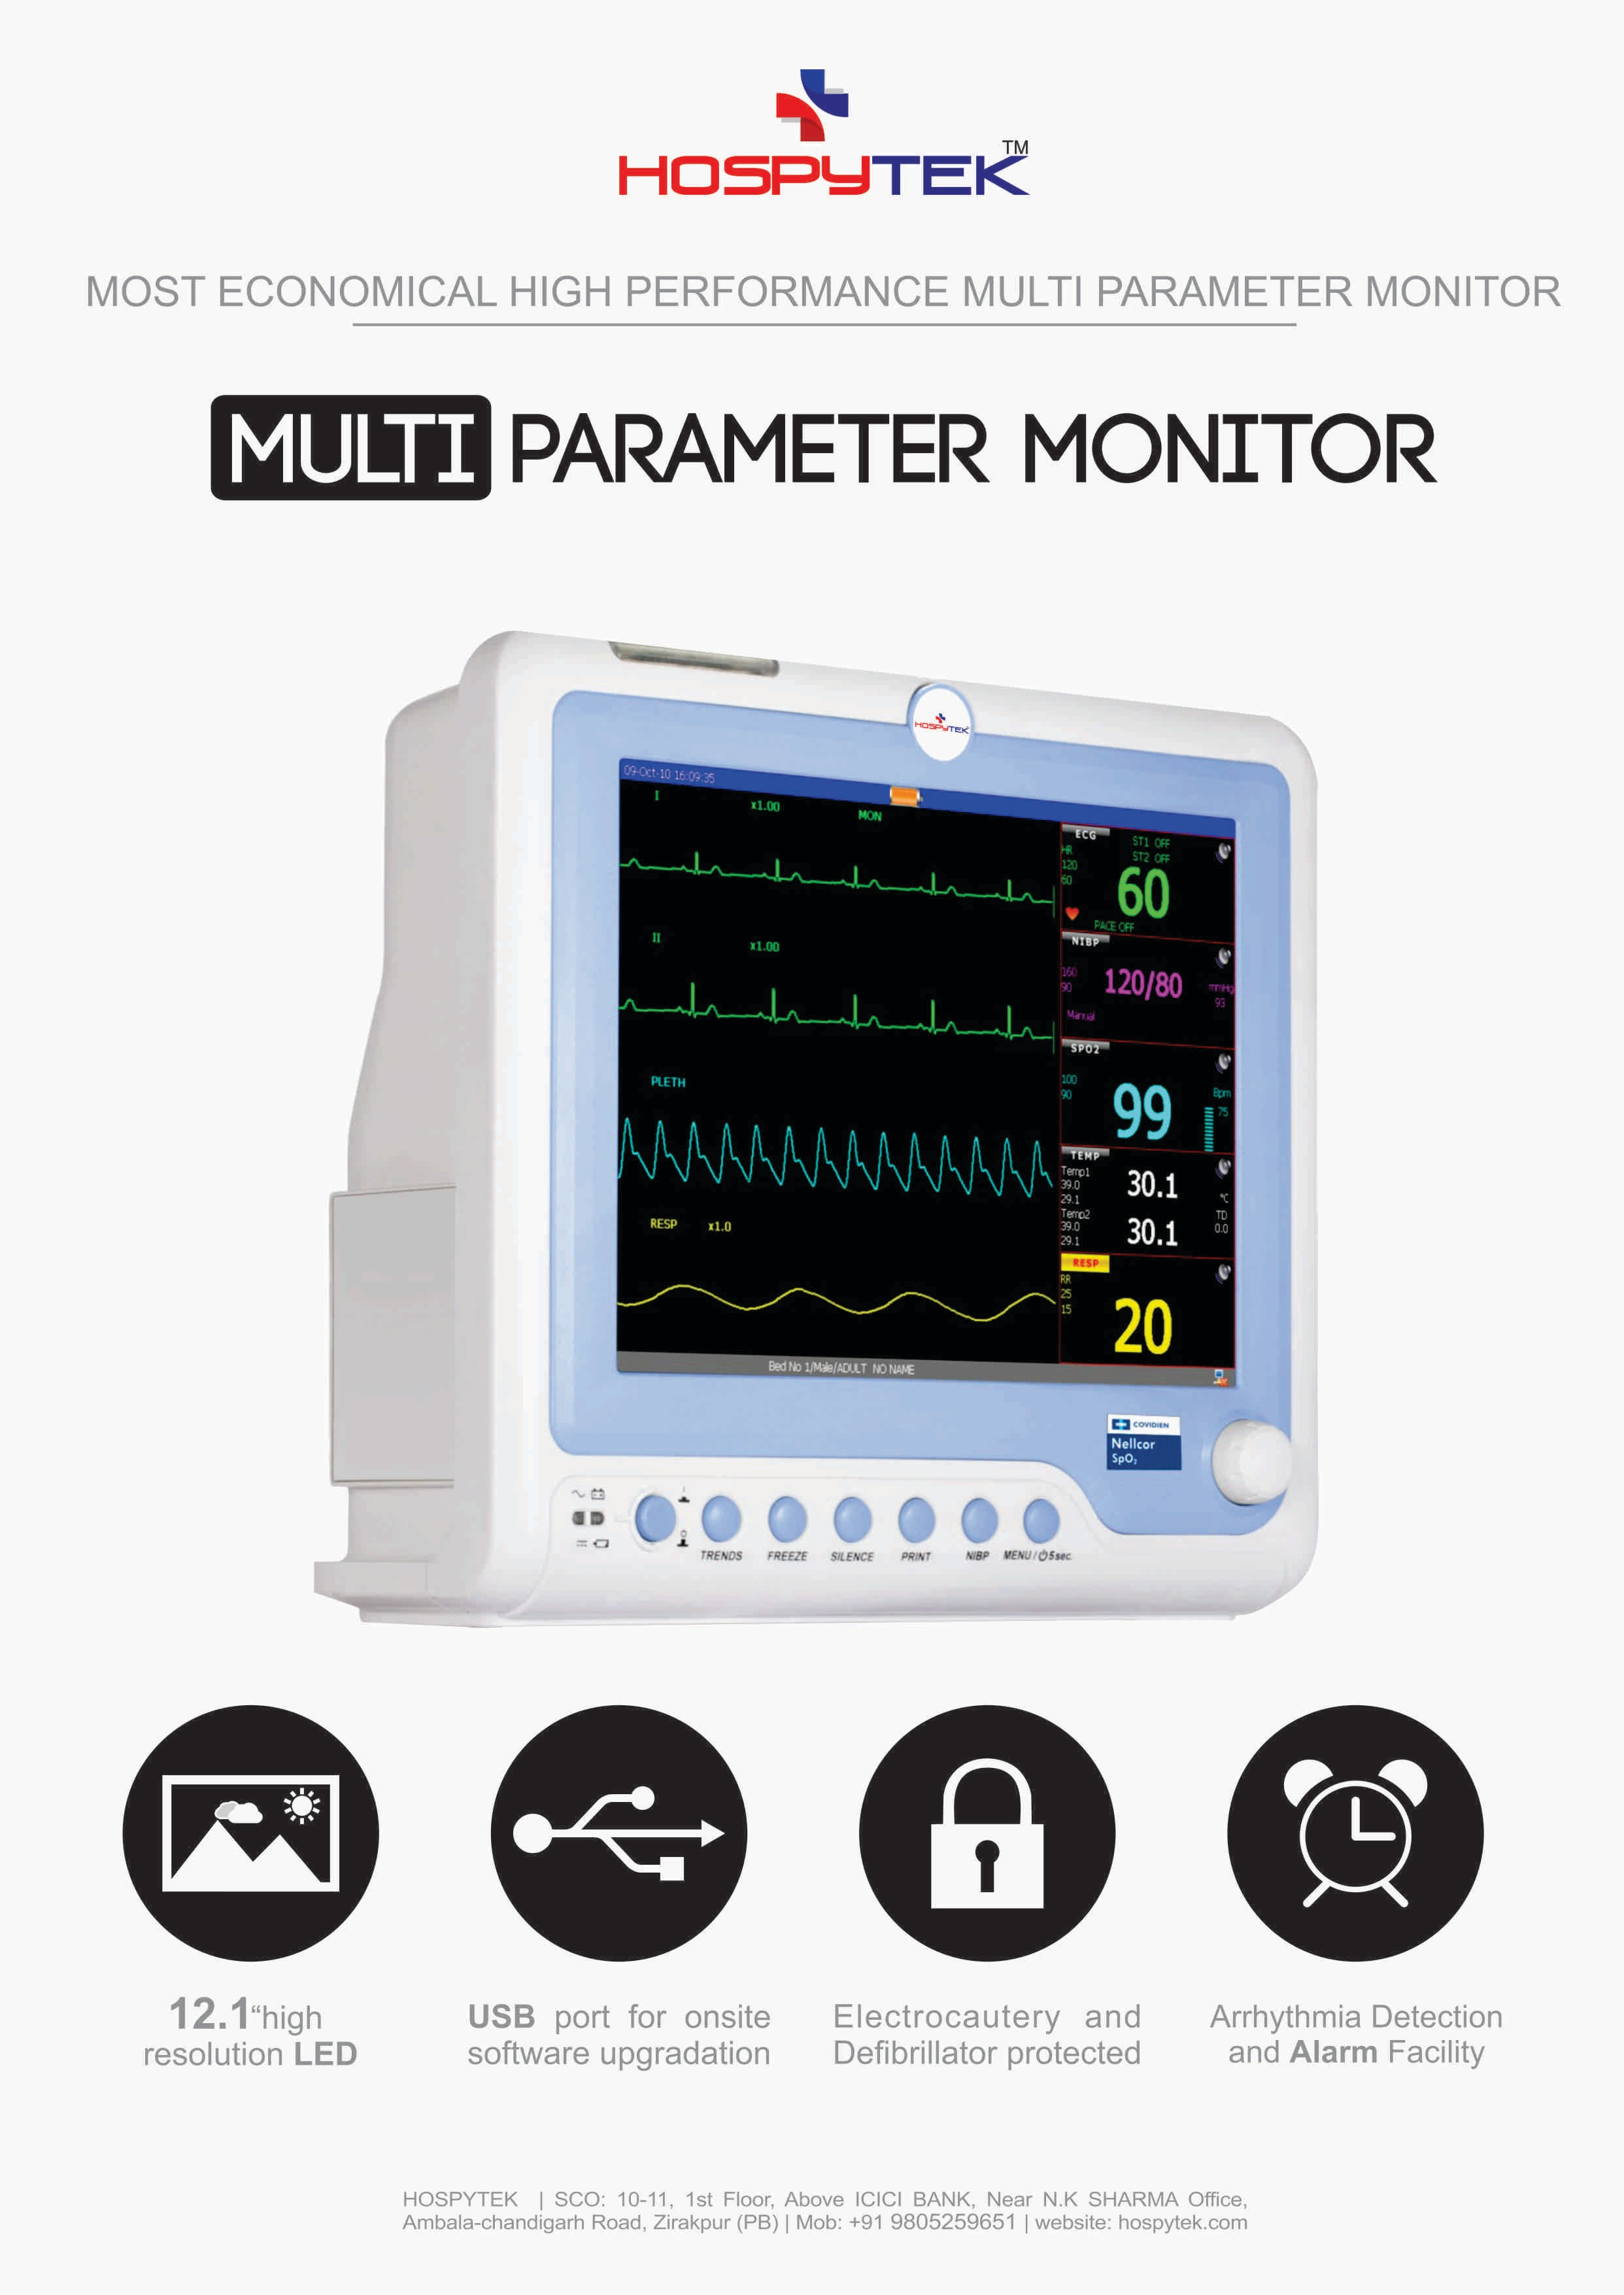 MULTI PARAMETER MONITOR Operation Environment: Display: 12.1 inch color TFT Temperature: 5˚C – 40˚C Humidity: 15% – 93% Power Supply: AC 100-300V, 50/60Hz SpO2 Measurement Range: 0%-100% Resolution: 1% NIBP Measurement Unit: mmHg/kPa Overpressure protection: Yes Operation Mode: Automatic/manual/Conti. Measurement Interval: 0-480min. Adjustable Measurement range: Adult: 10-300 mmHg Child: 10-240 mmHg Infant: 10-150 mmHg Resolution: 1mmHg Alarm Range: audible and visual alarm PR Measurement Range: 40-240 bpm  for any enquiry :- sales@hospytek.com